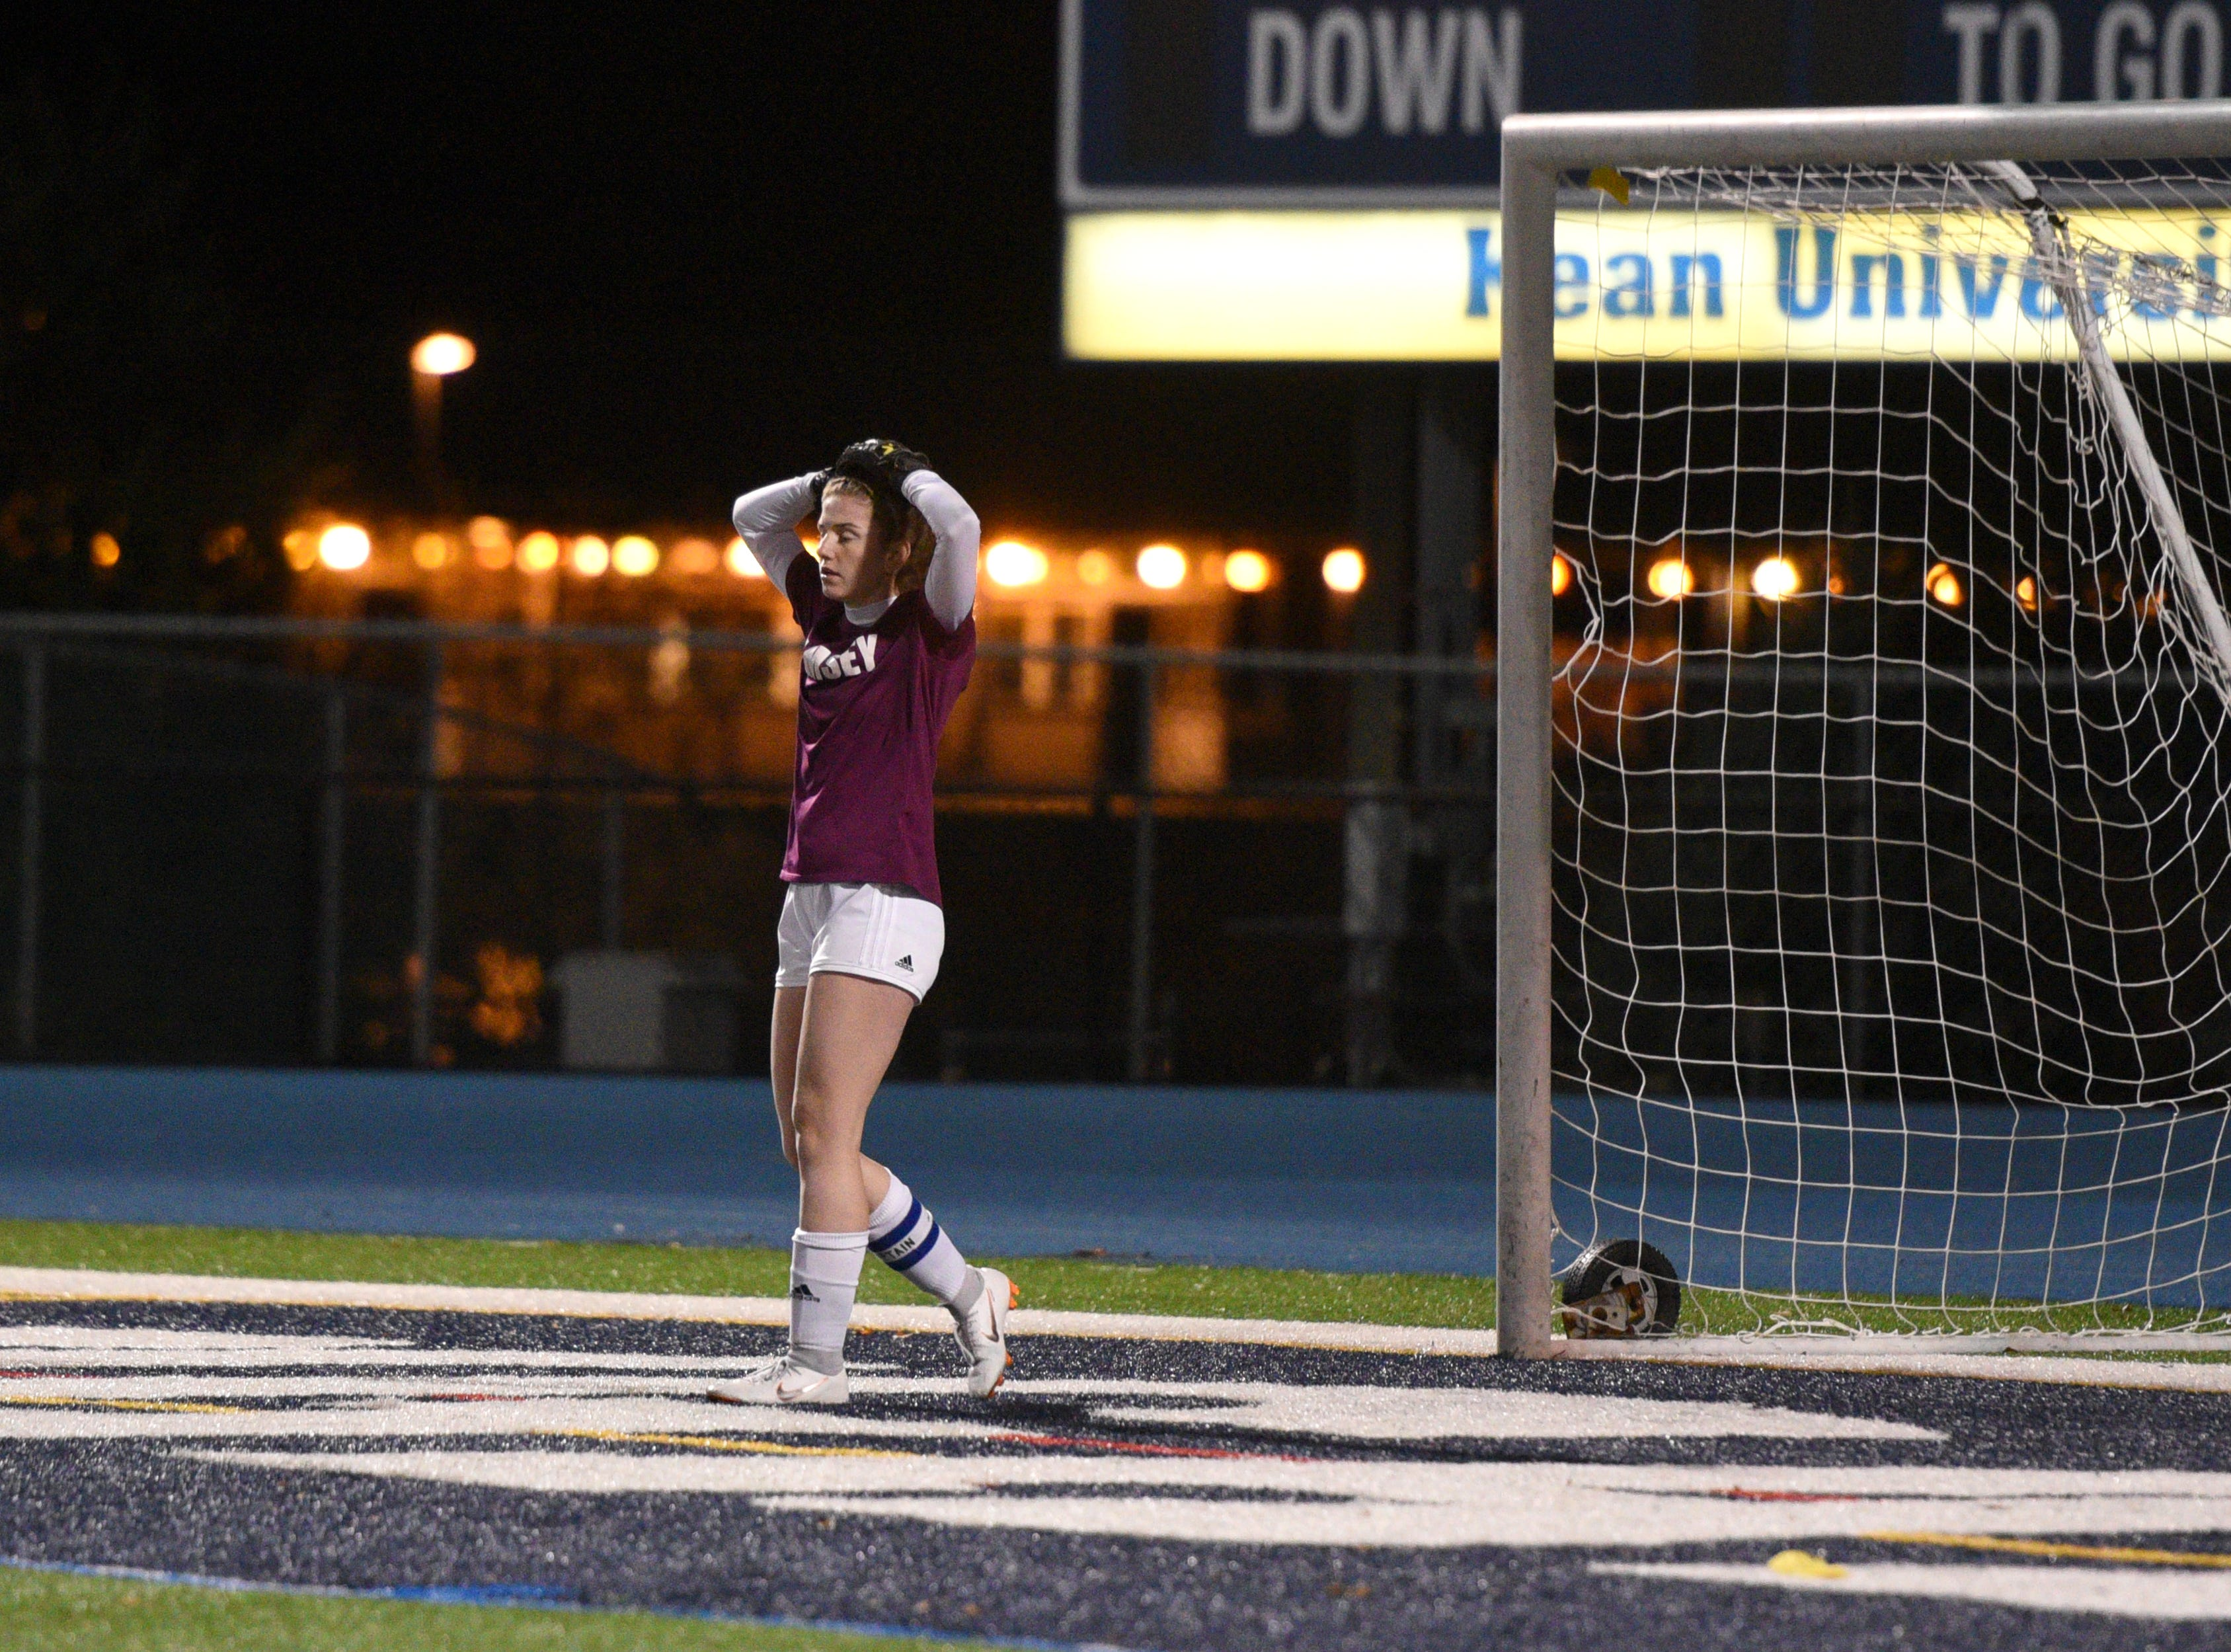 Ramsey goalie Katie Sylvester reacts after Governor Livingston scores the game-winning goal in the Group II final on Sunday, Nov. 18, 2018 at Kean University.